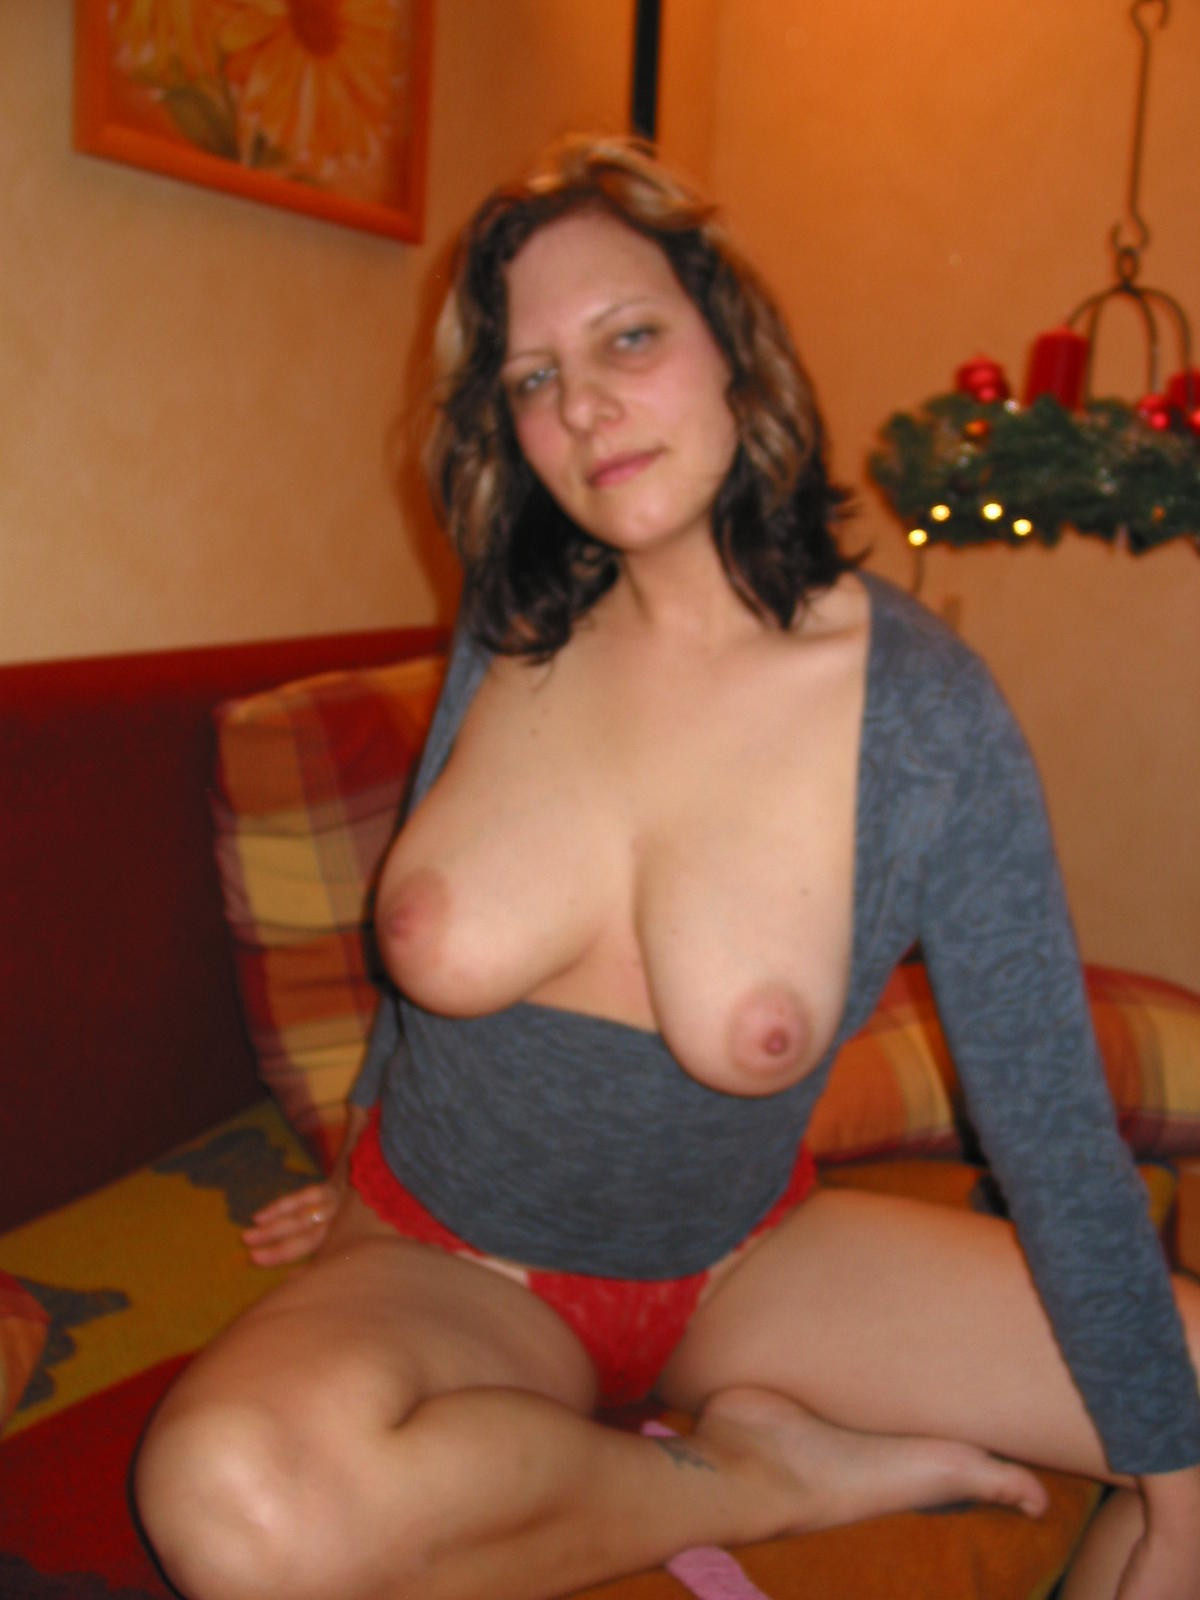 Natural red hair woman nude